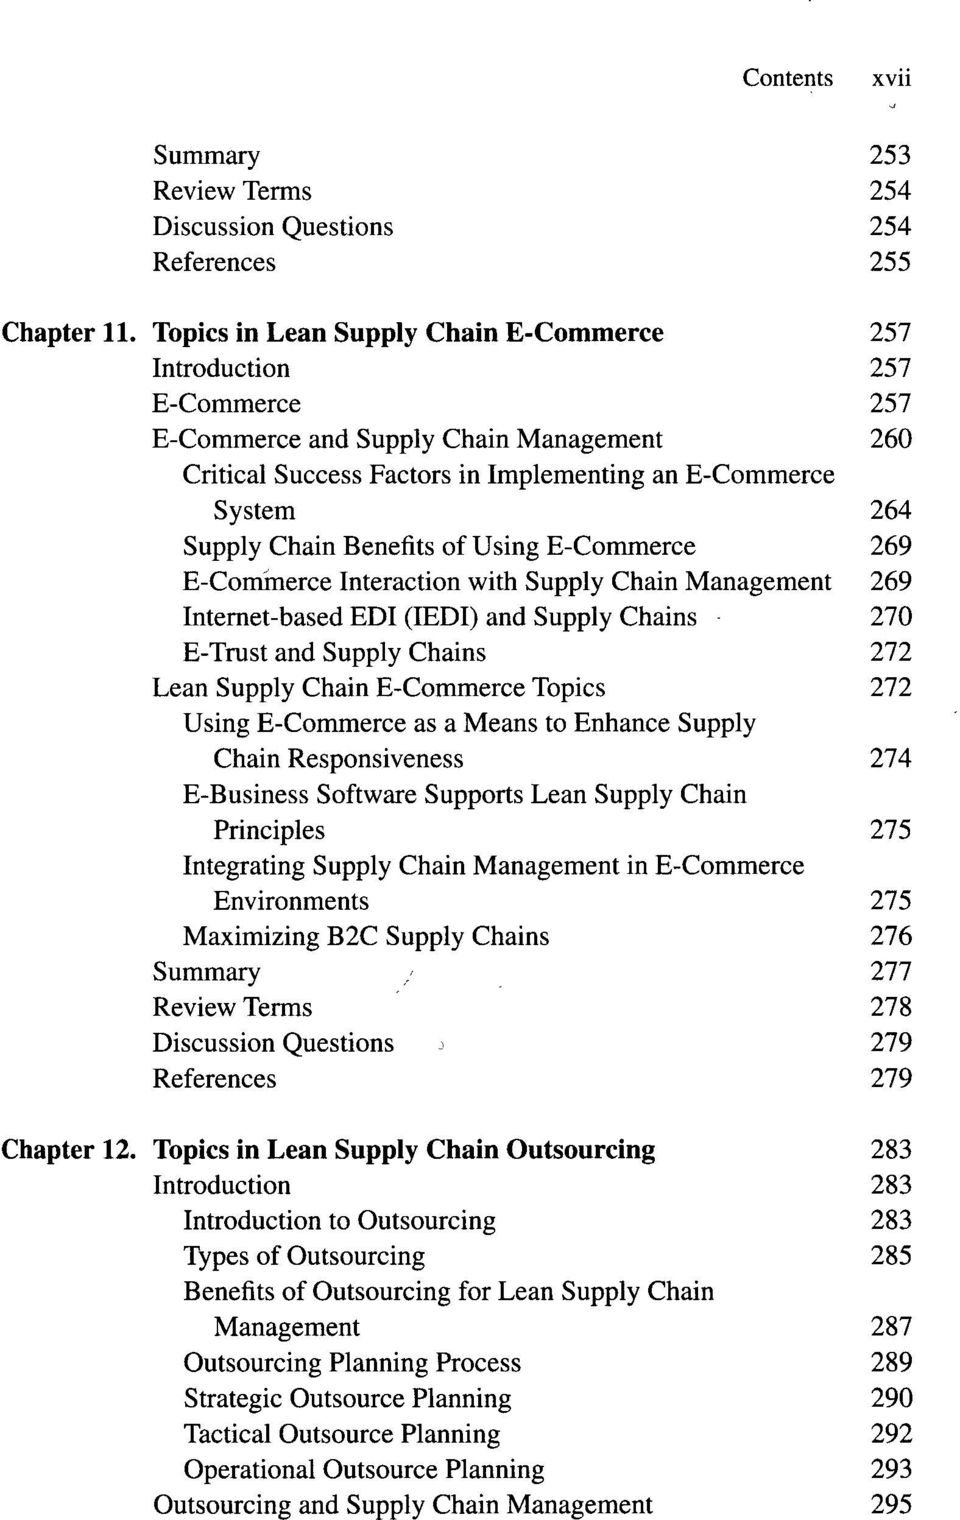 Benefits of Using E-Commerce 269 E-Commerce Interaction with Supply Chain Management 269 Internet-based EDI (IEDI) and Supply Chains 270 E-Trust and Supply Chains 272 Lean Supply Chain E-Commerce